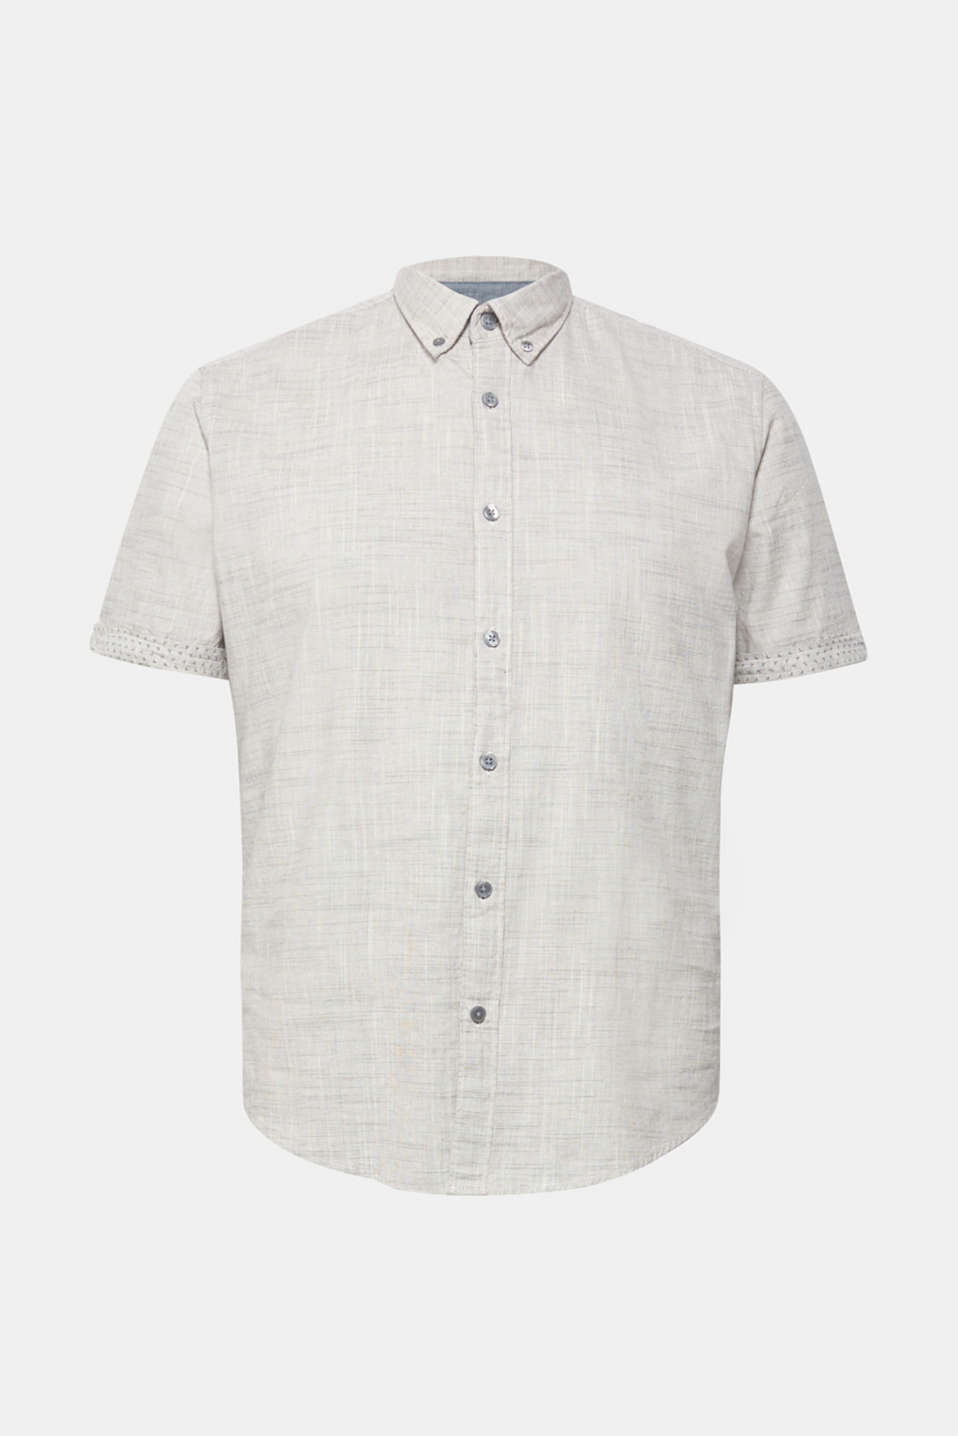 Shirts woven Slim fit, LIGHT GREY, detail image number 6